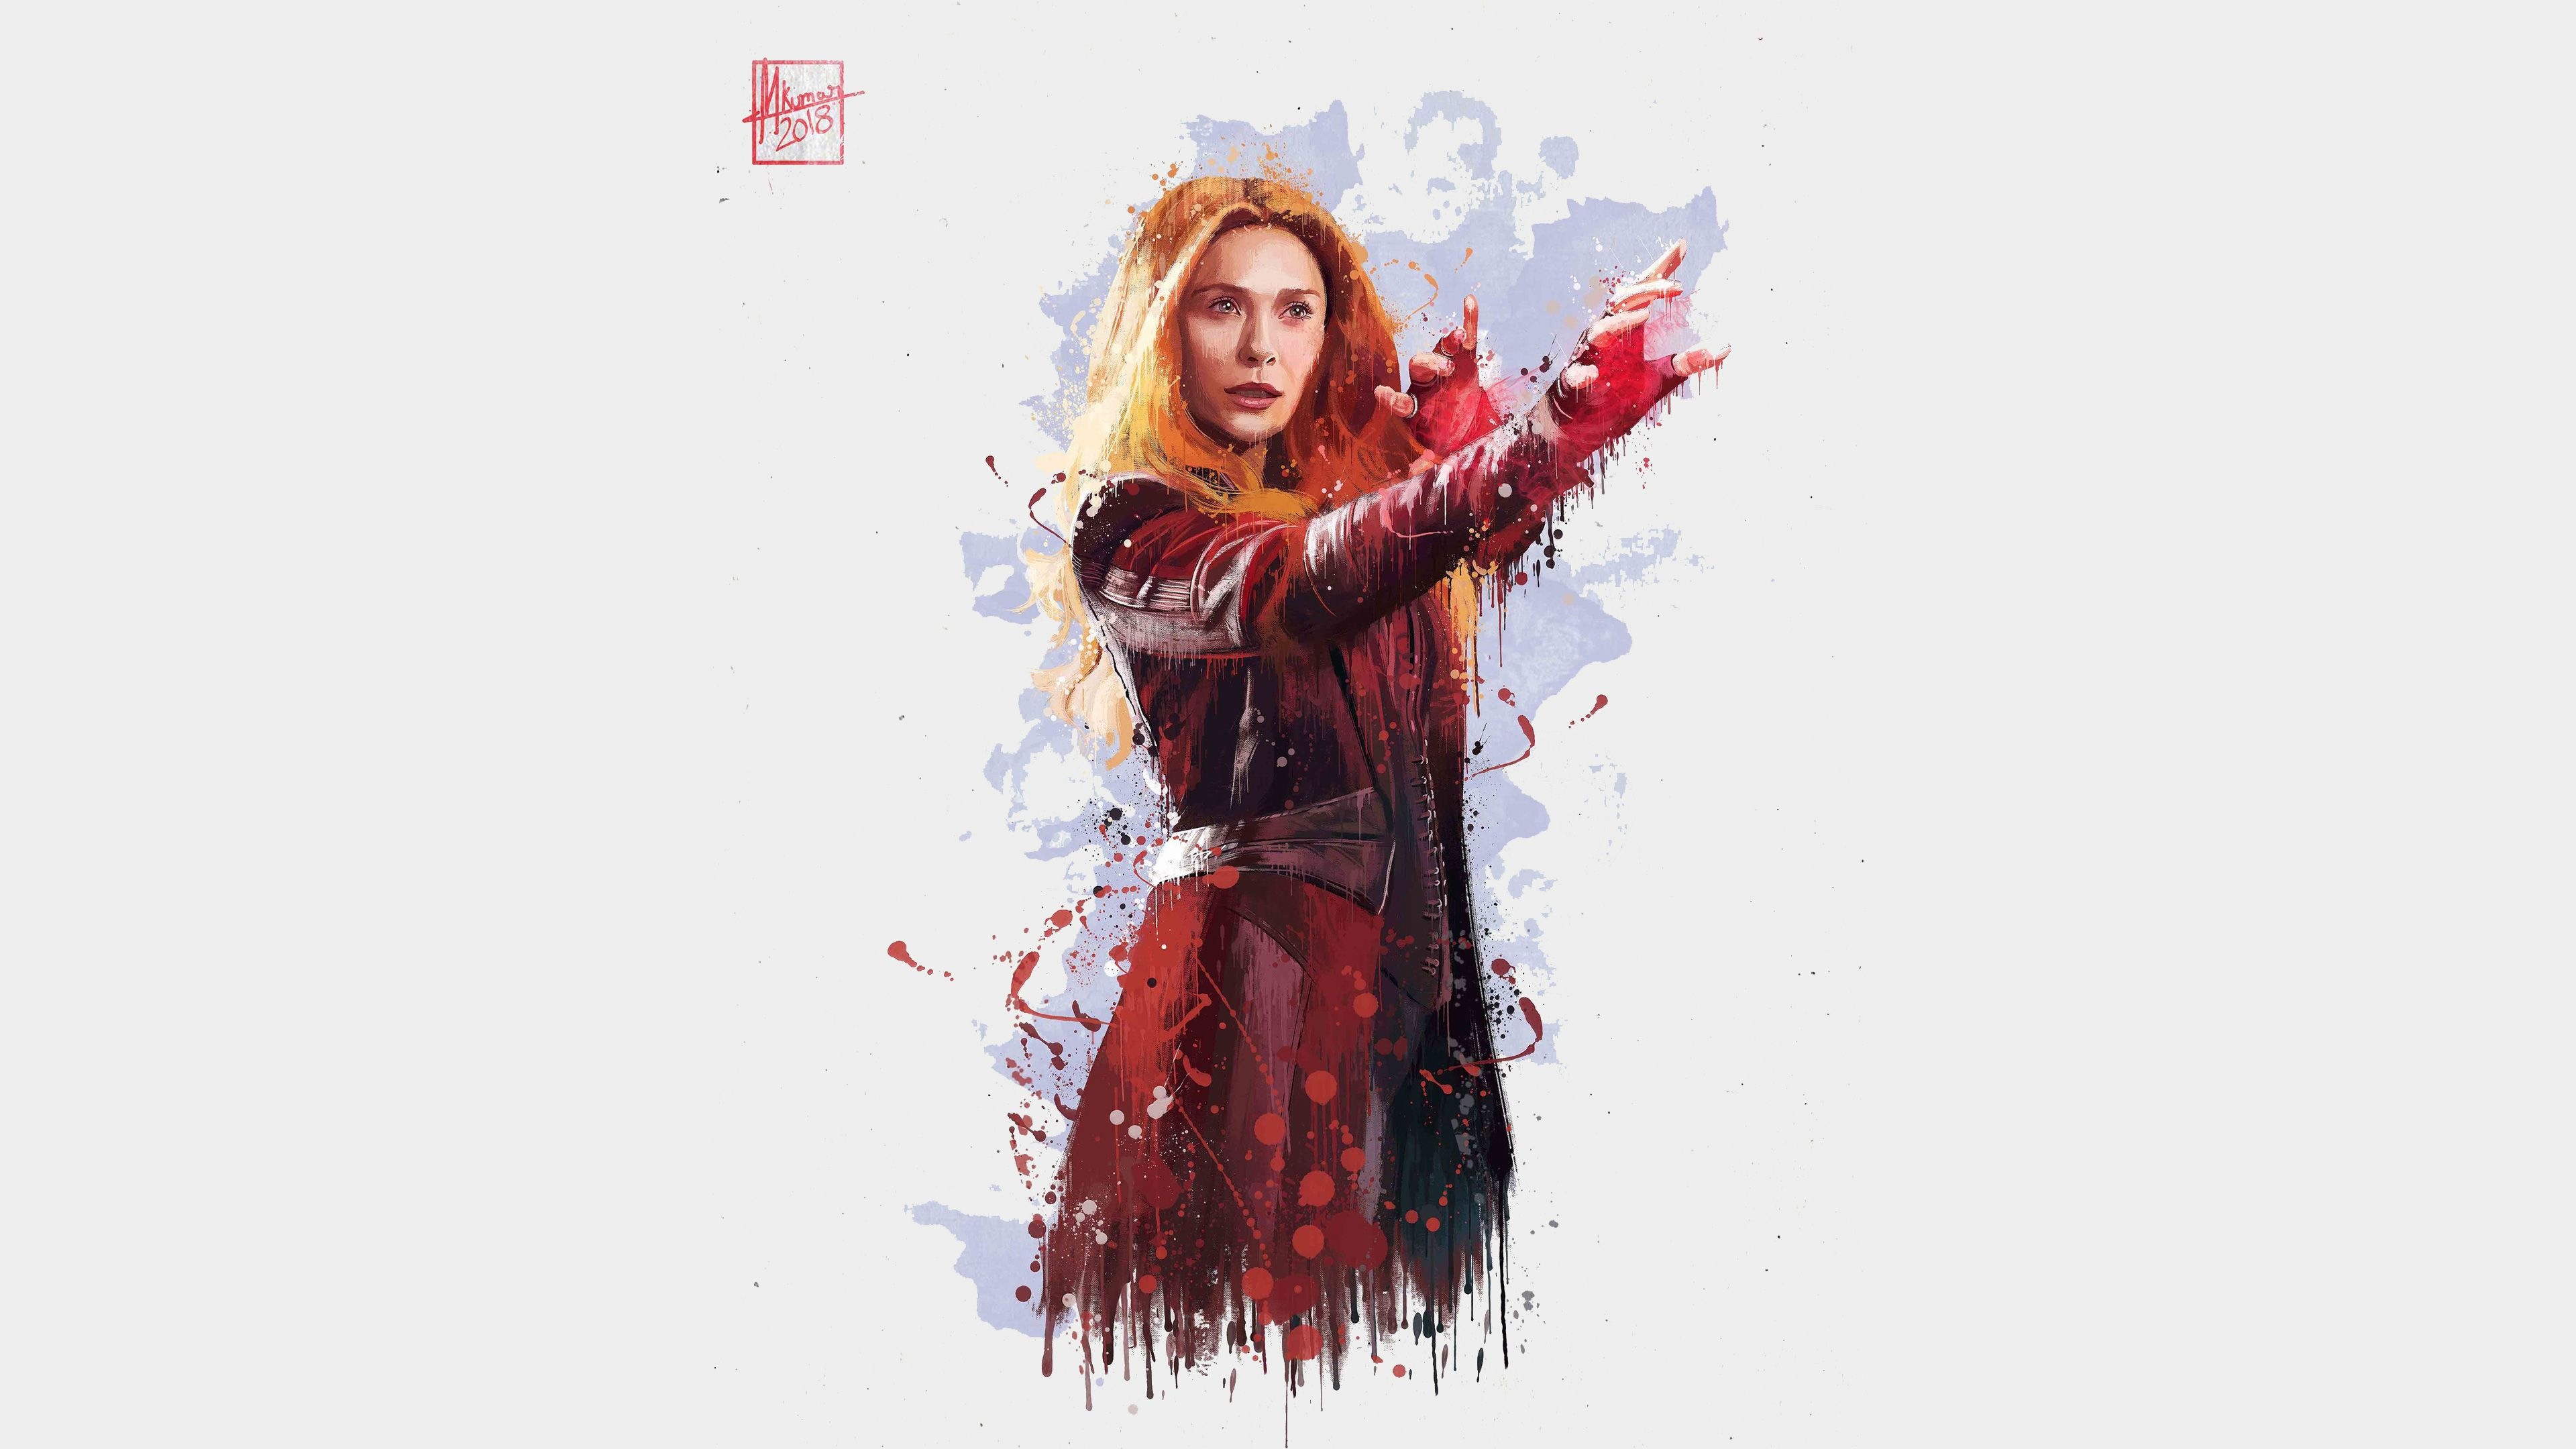 Scarlet Witch Avengers Infinity War Artwork 2018 720x1280 Wallpaper Scarlet Witch Avengers Scarlet Witch Marvel Marvel Infinity War